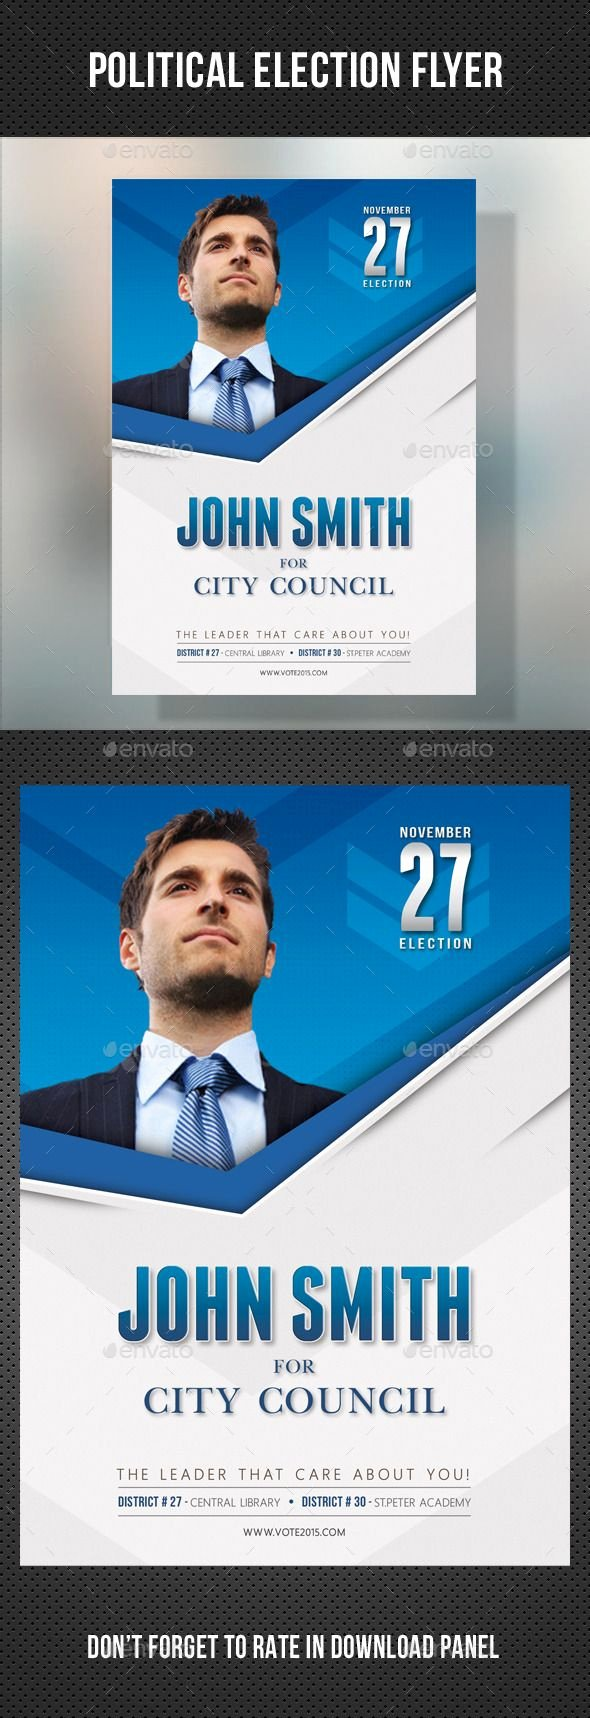 13 Best Free Political Campaign Flyer Templates Images On